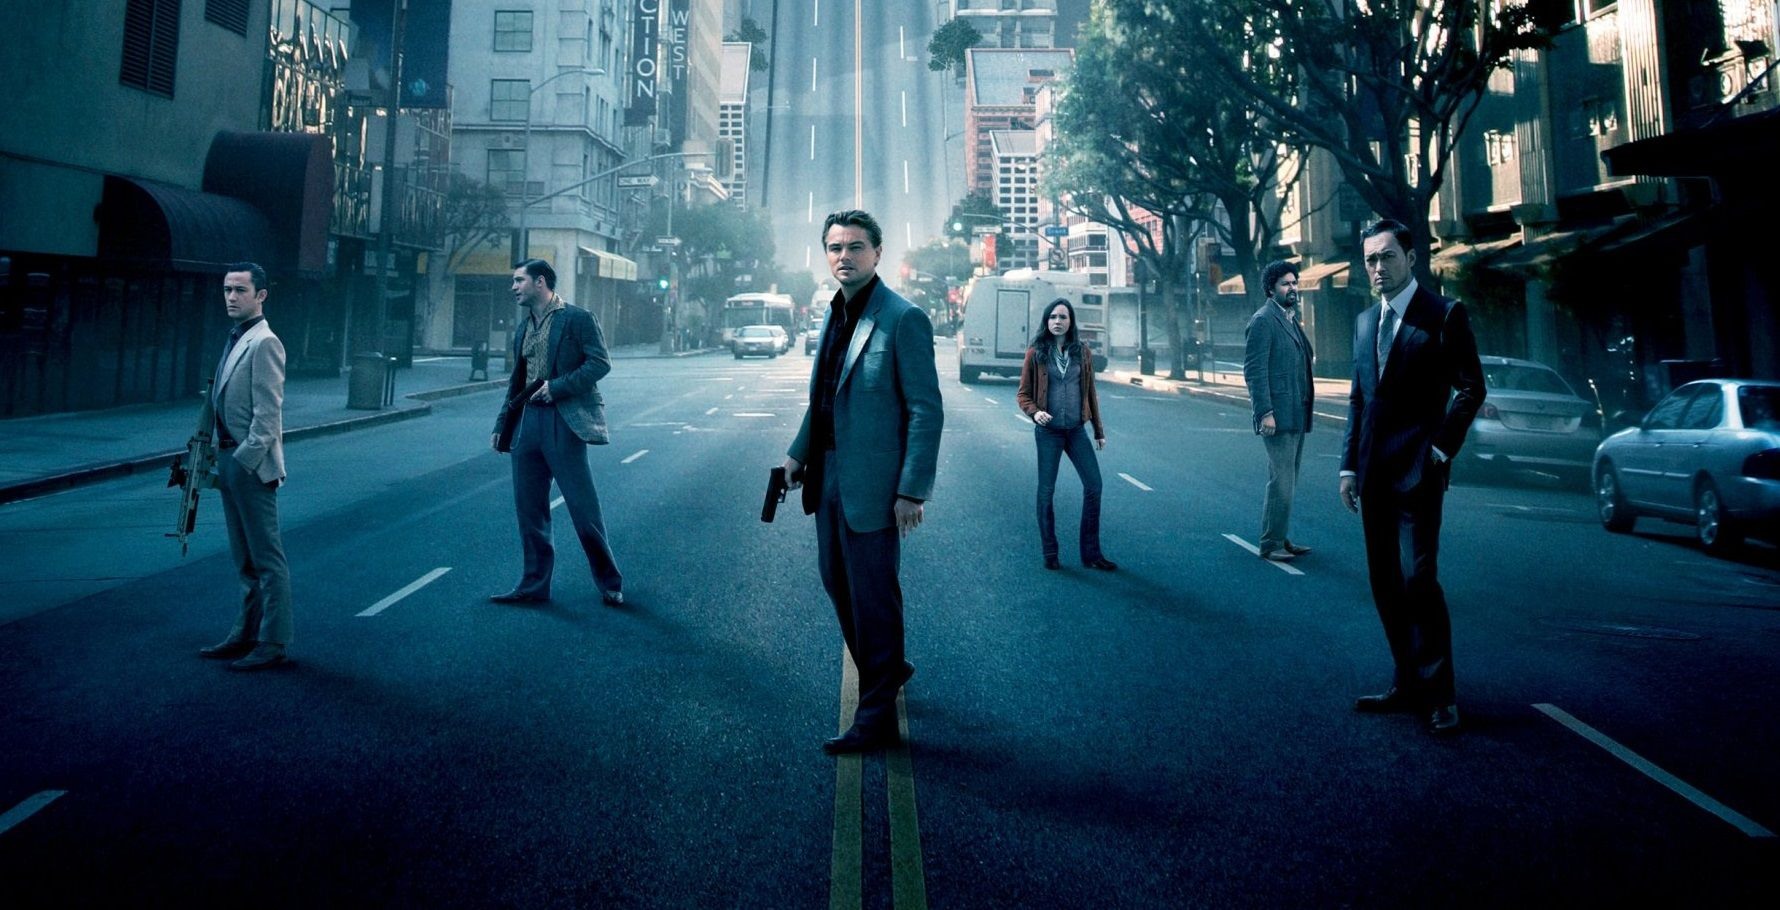 10 Fascinating Behind The Scenes Facts About Inception